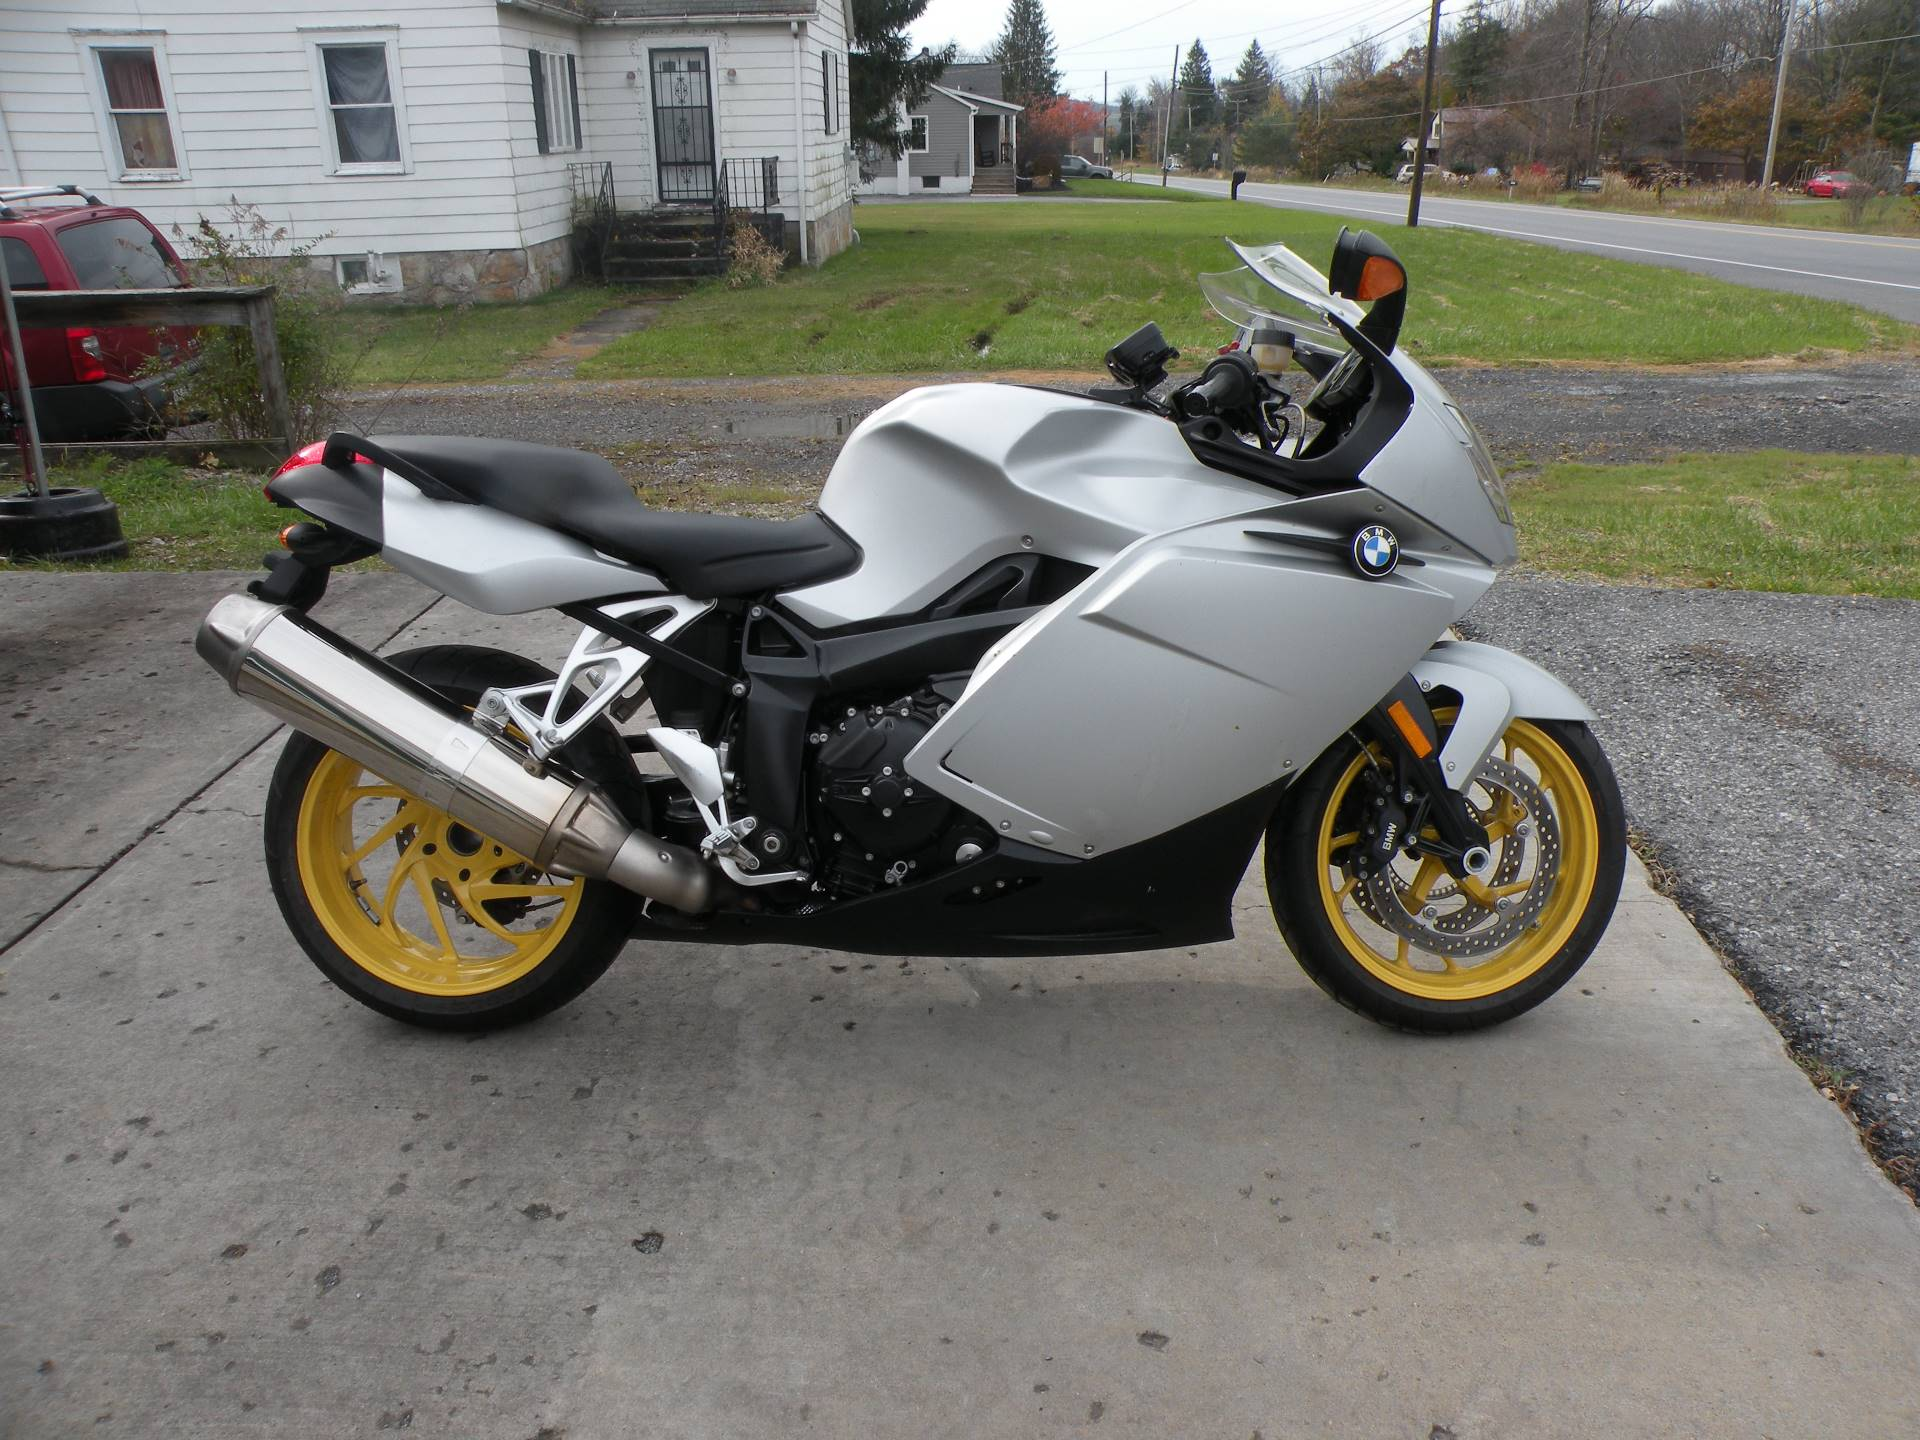 Used 2007 Bmw K 1200 S Motorcycles In Windber Pa M28845 Titan